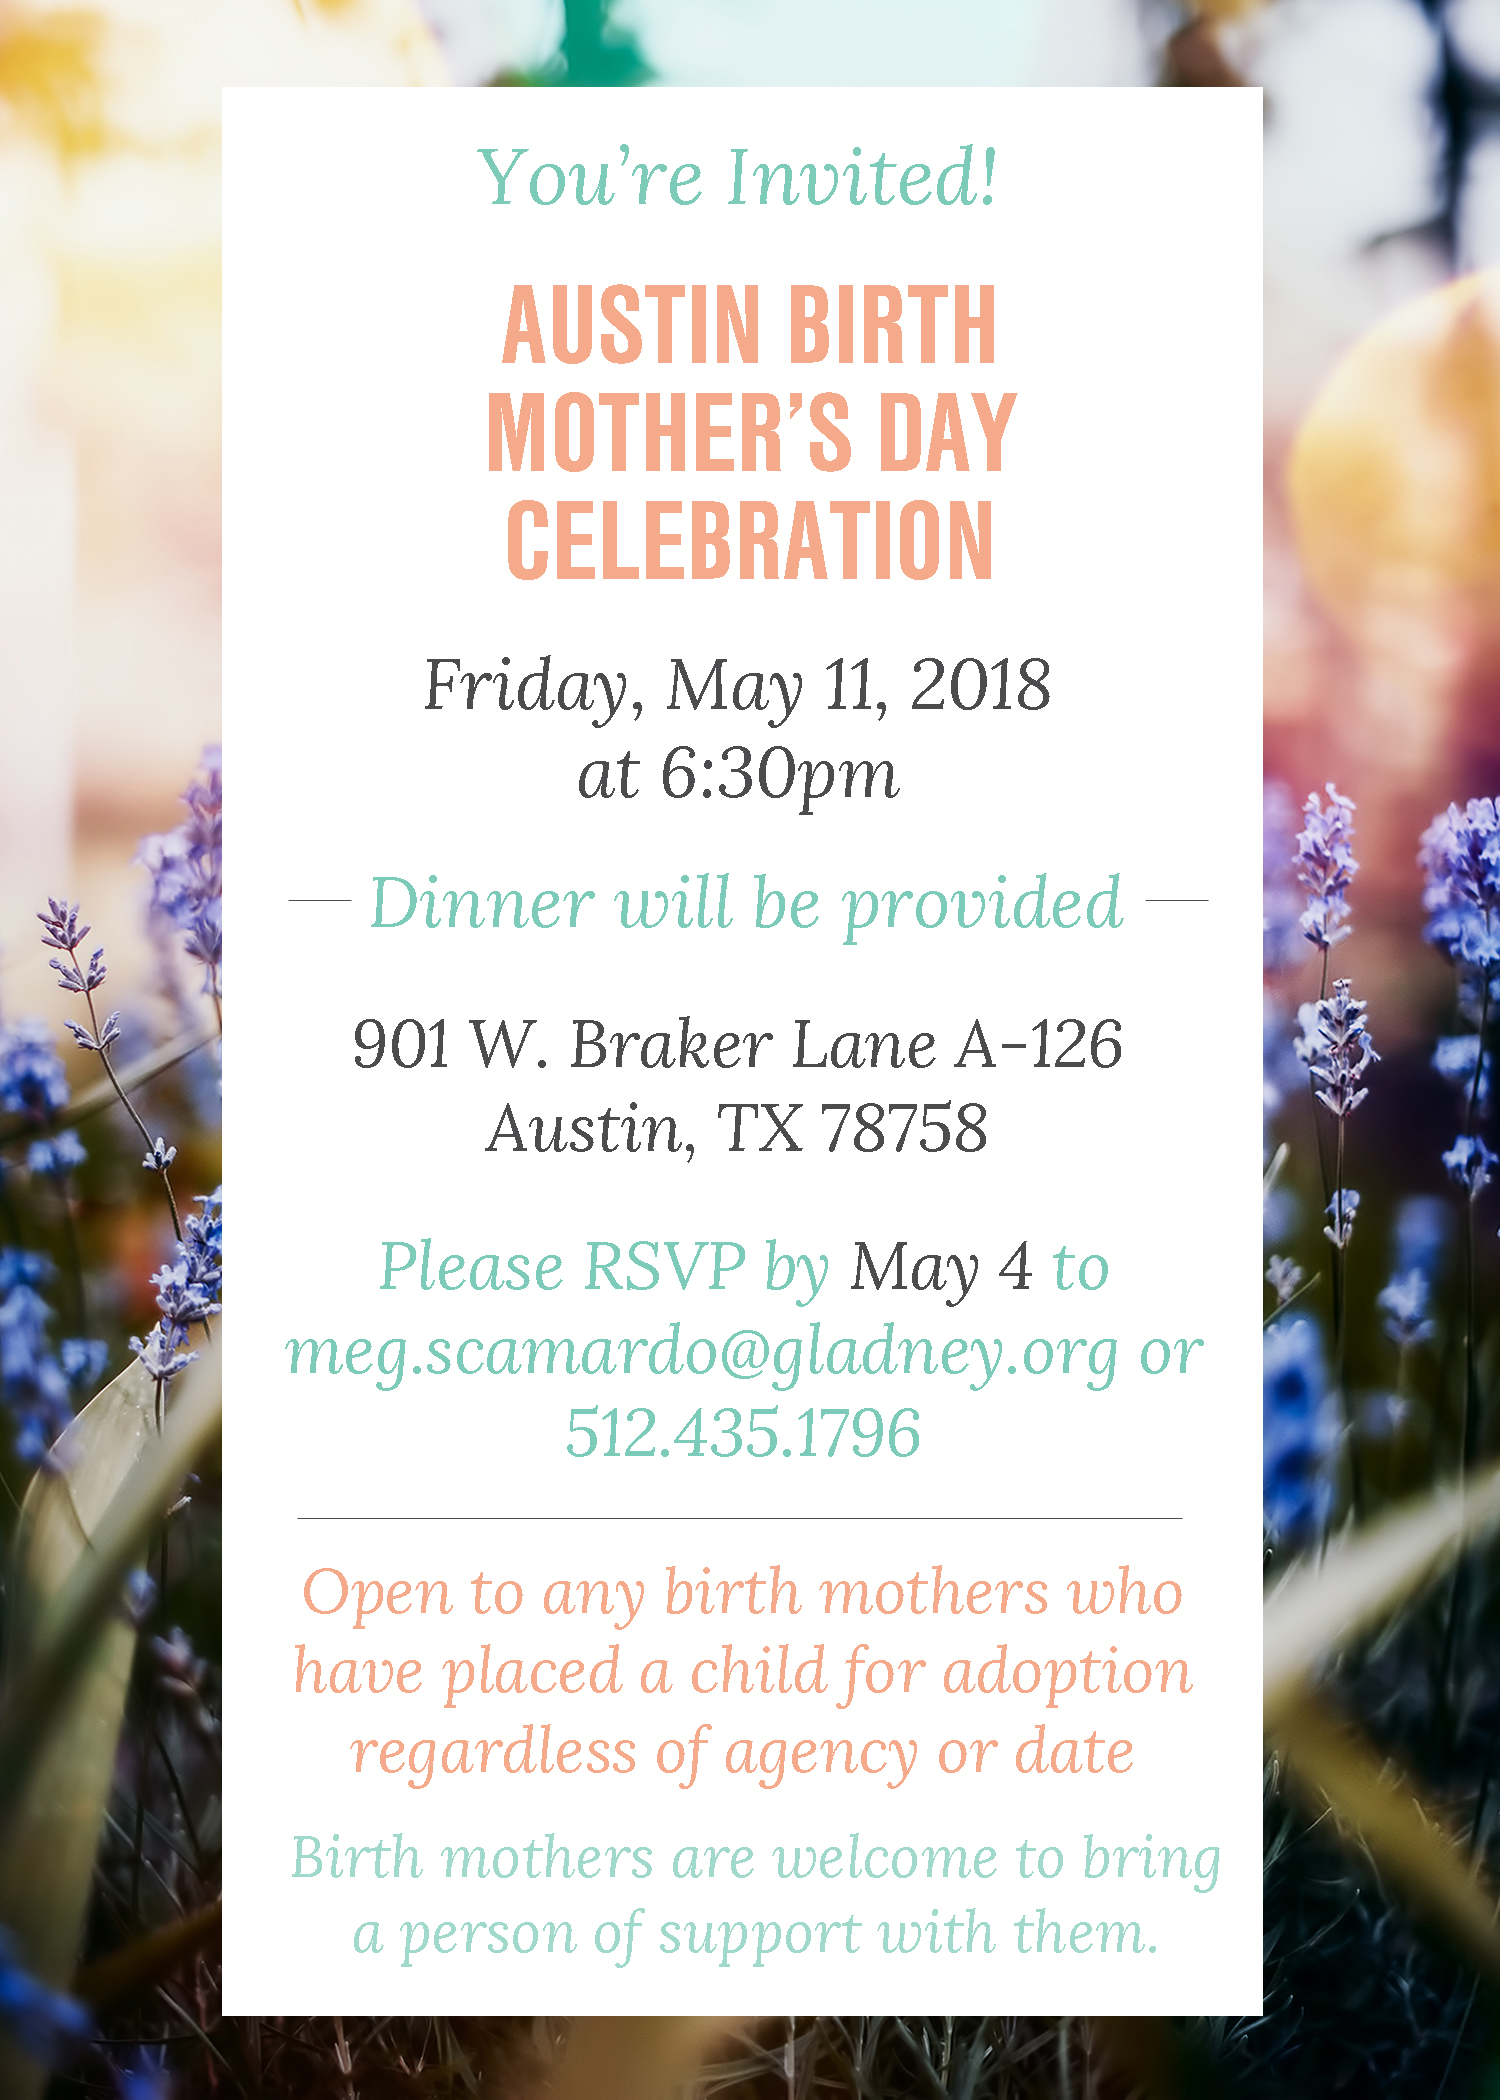 Austin_Birth_Mother's_Day_Invite_2018_(1).jpg